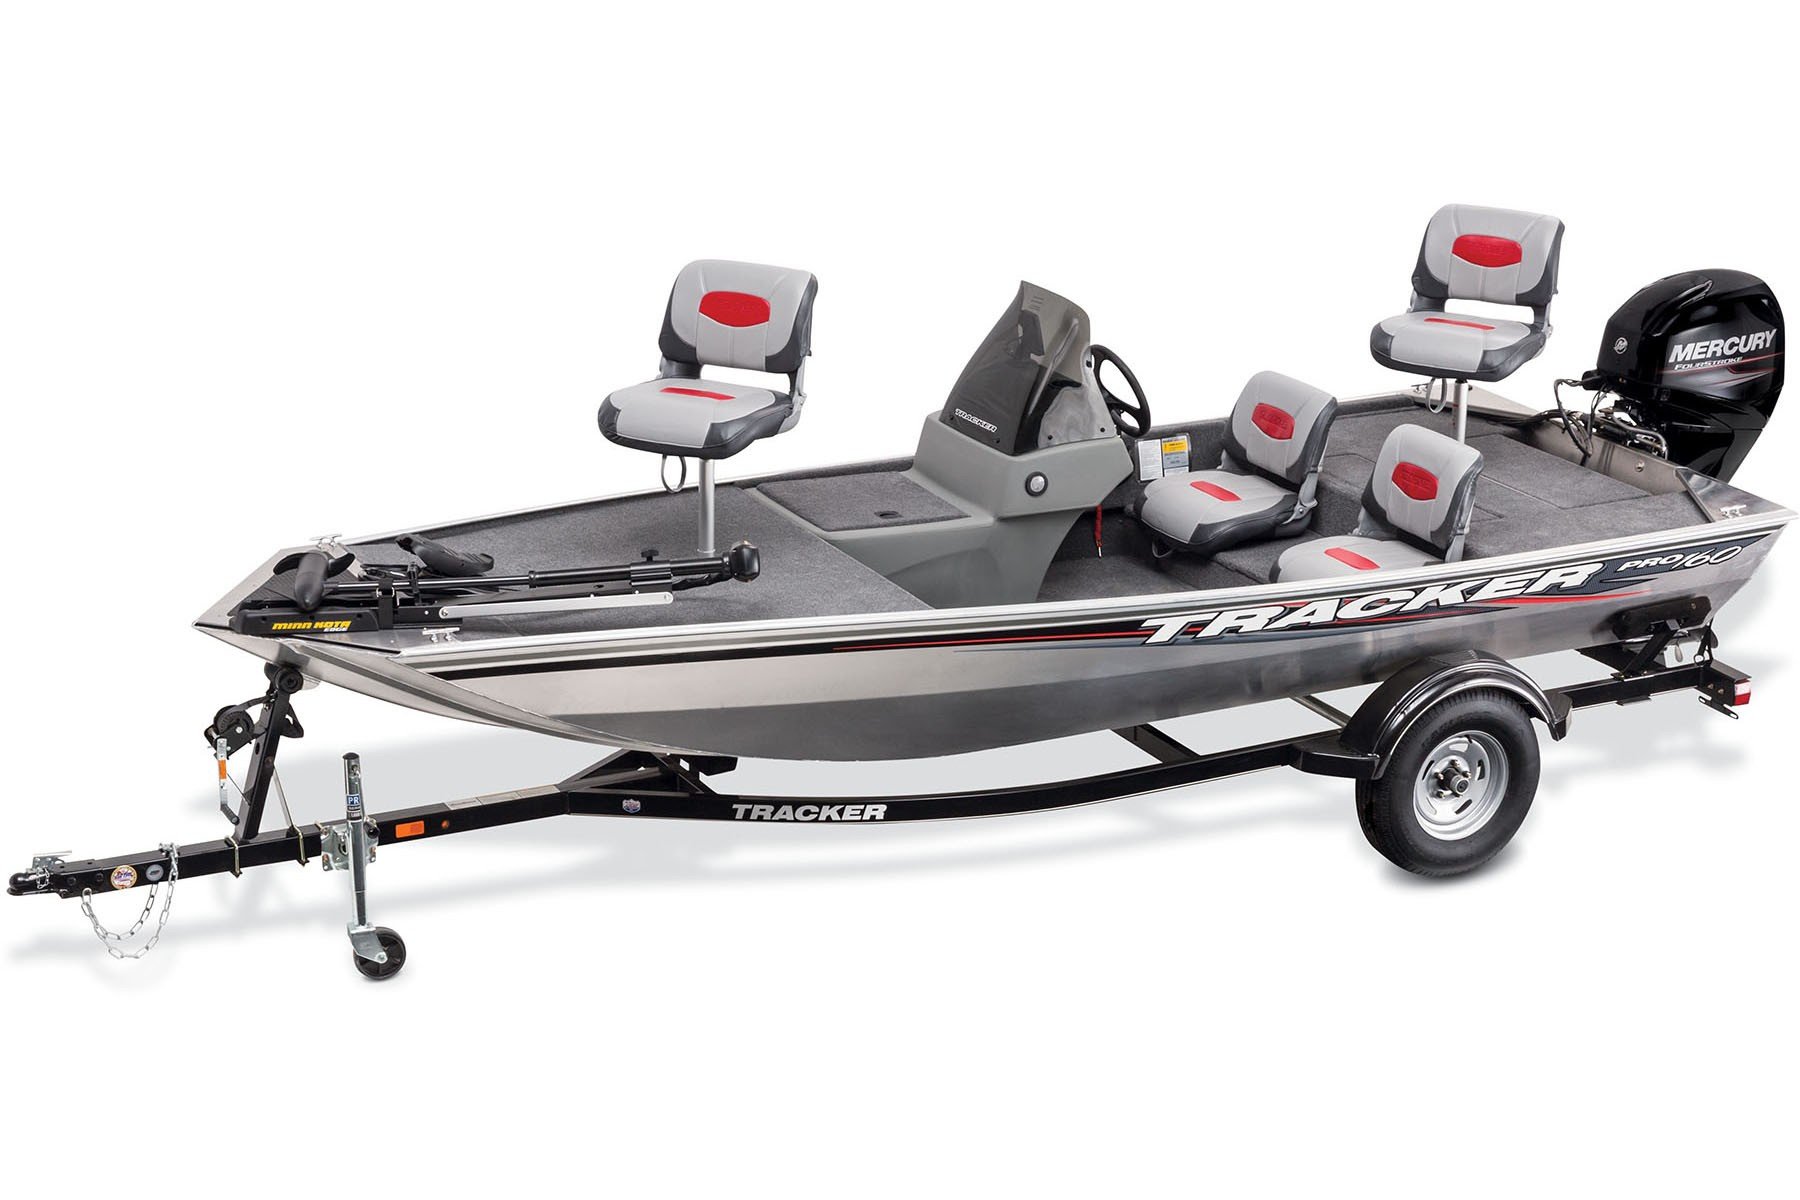 Tracker pro 160 bass boats semi v tracker barcos for Bass pro fishing boats